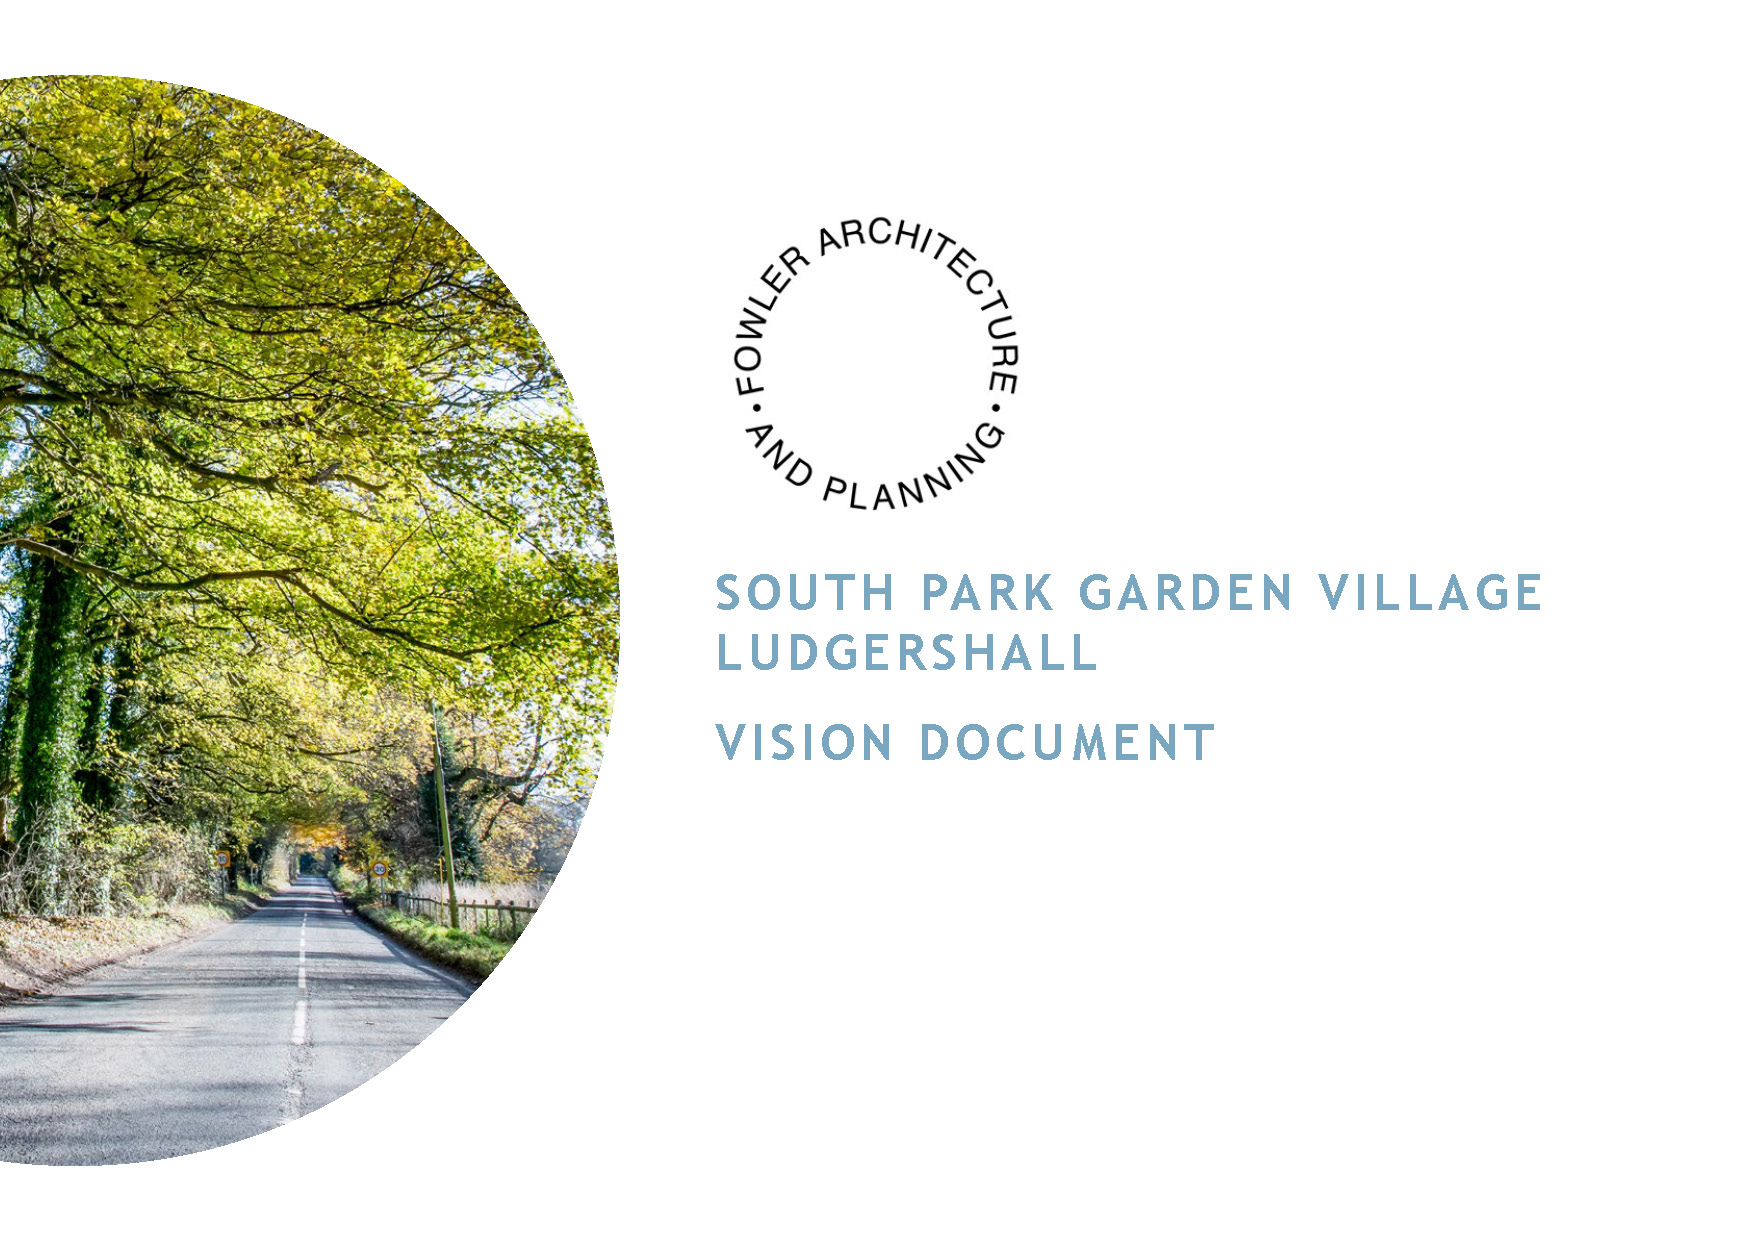 Pages-from-V1.1-WEB-South-Park-Garden-Village-Vision-Document_Page_1.jpg